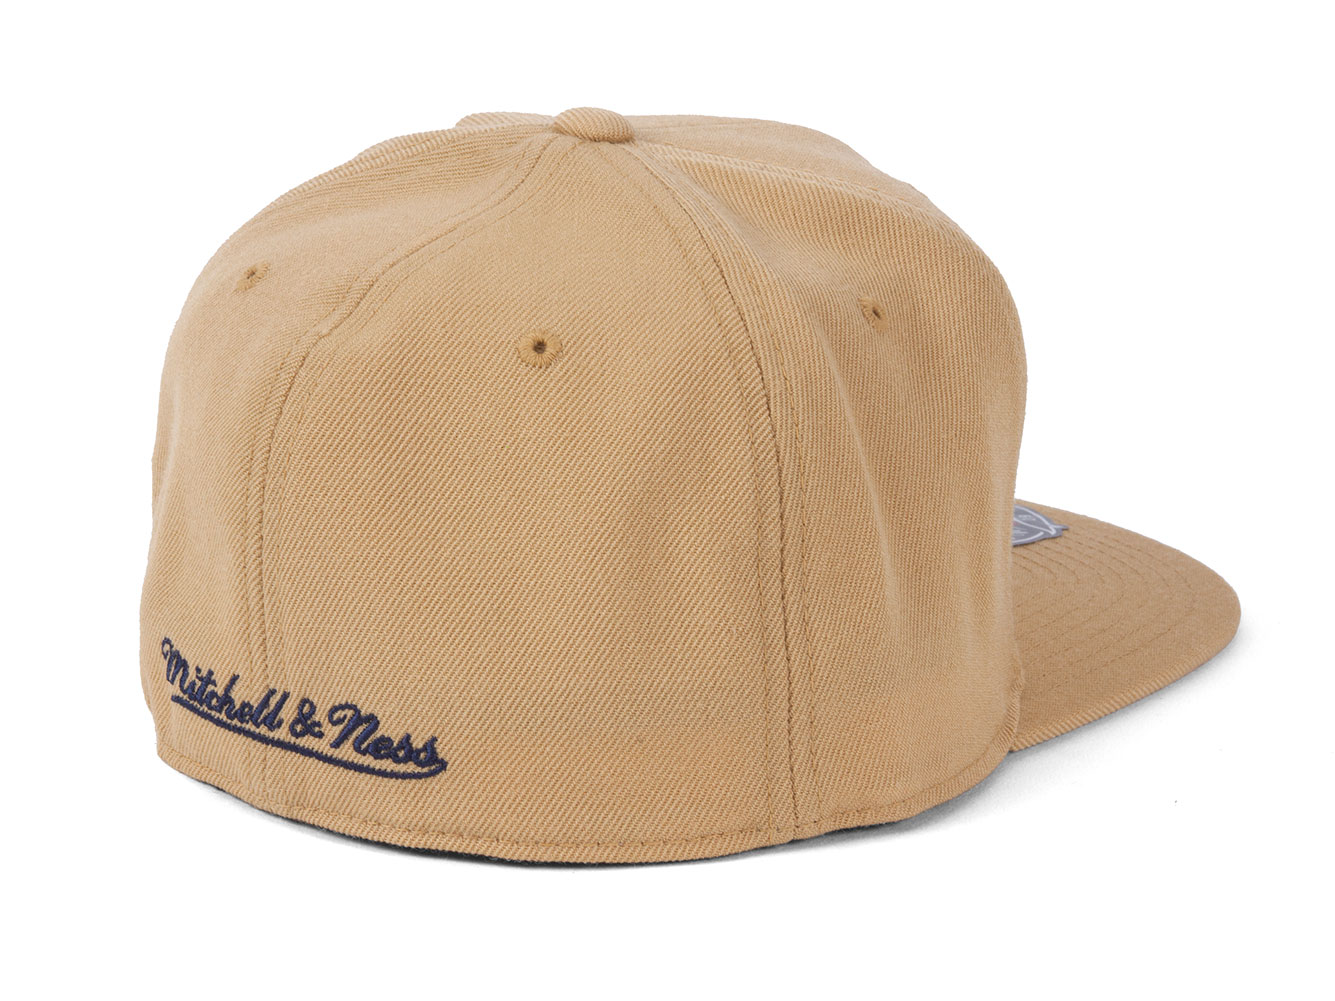 Mitchell /& Ness New Orleans Pelicans Fitted Baseball Cap